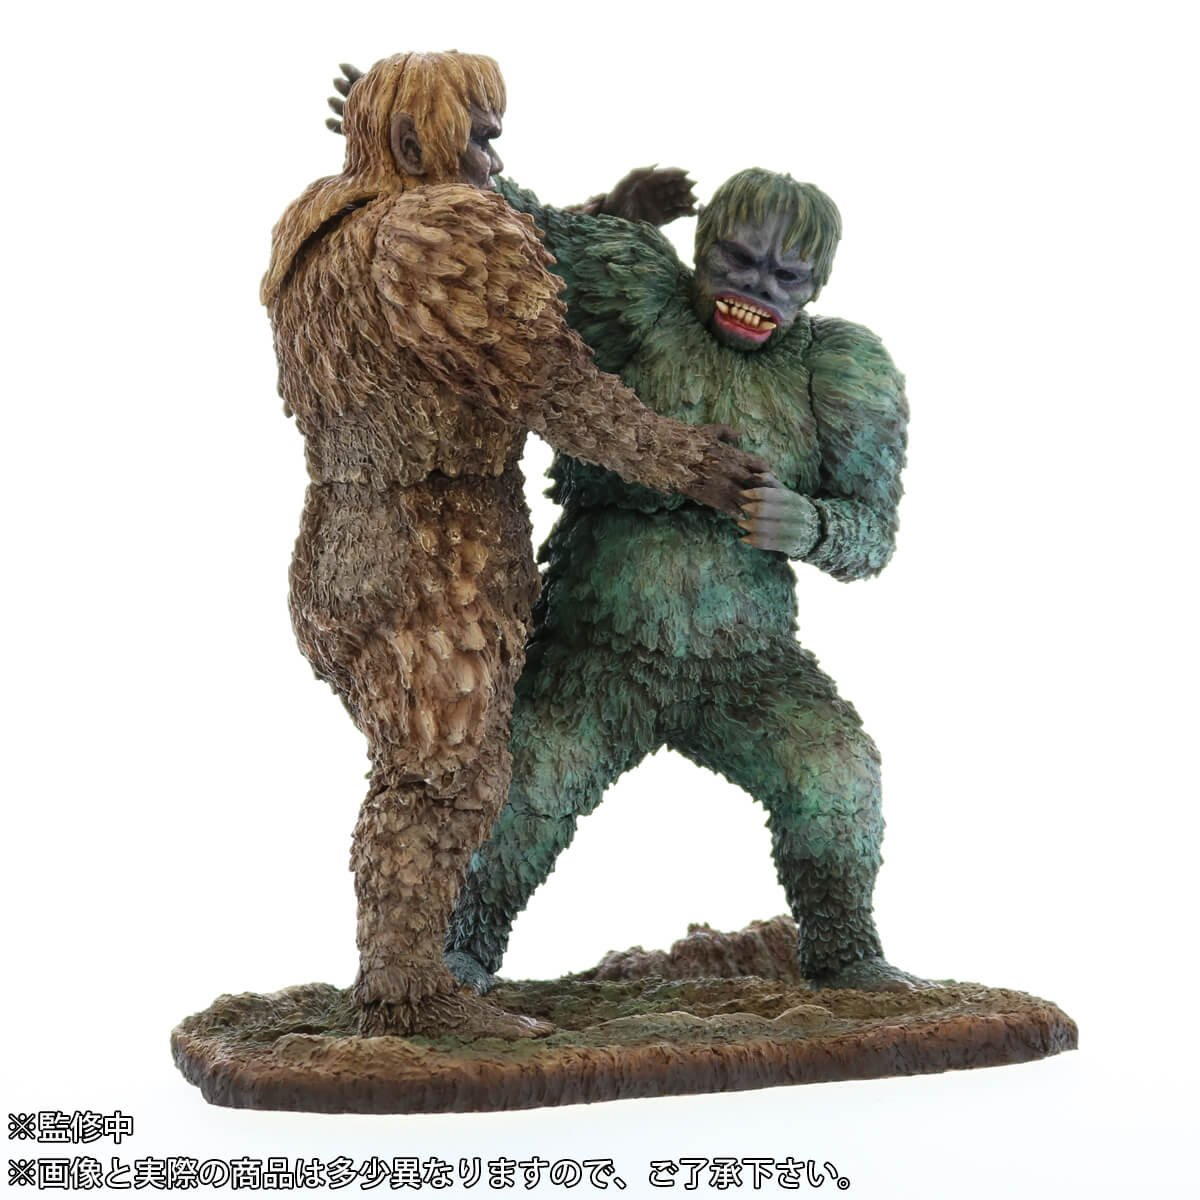 Toho Large Monster Series Sanda vs. Guyra Shonen Rick Limited Edition 6